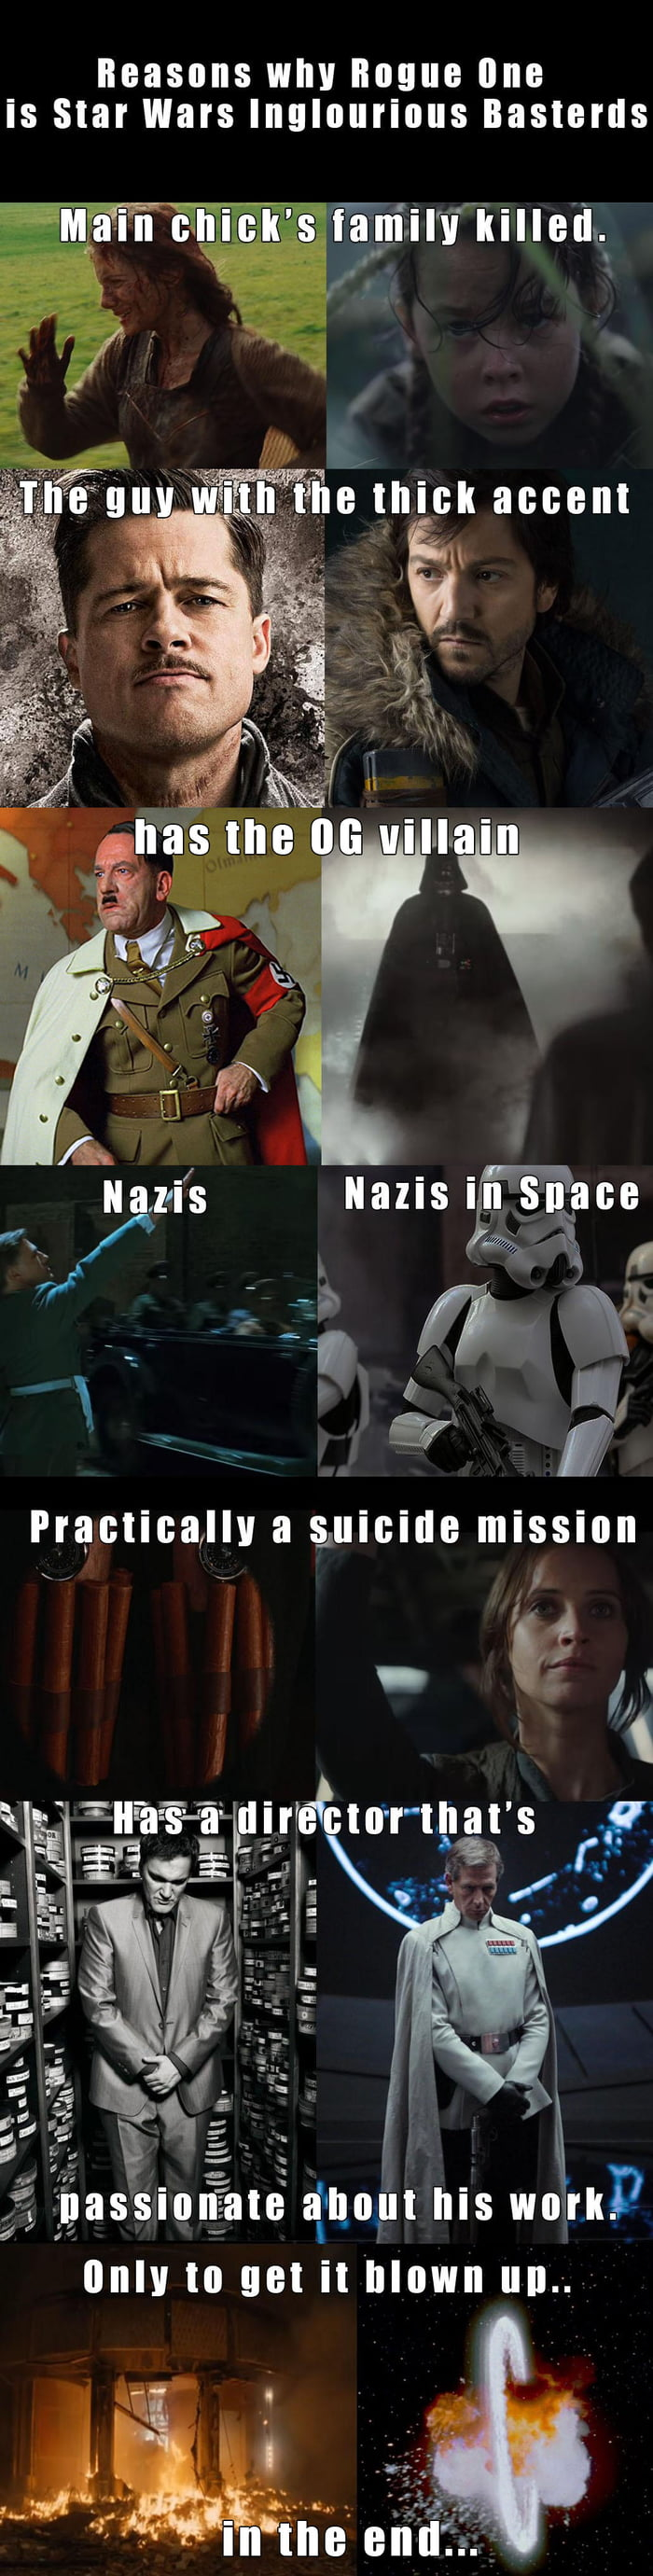 "The ""War"" in Star Wars, ain't that a bingo..."